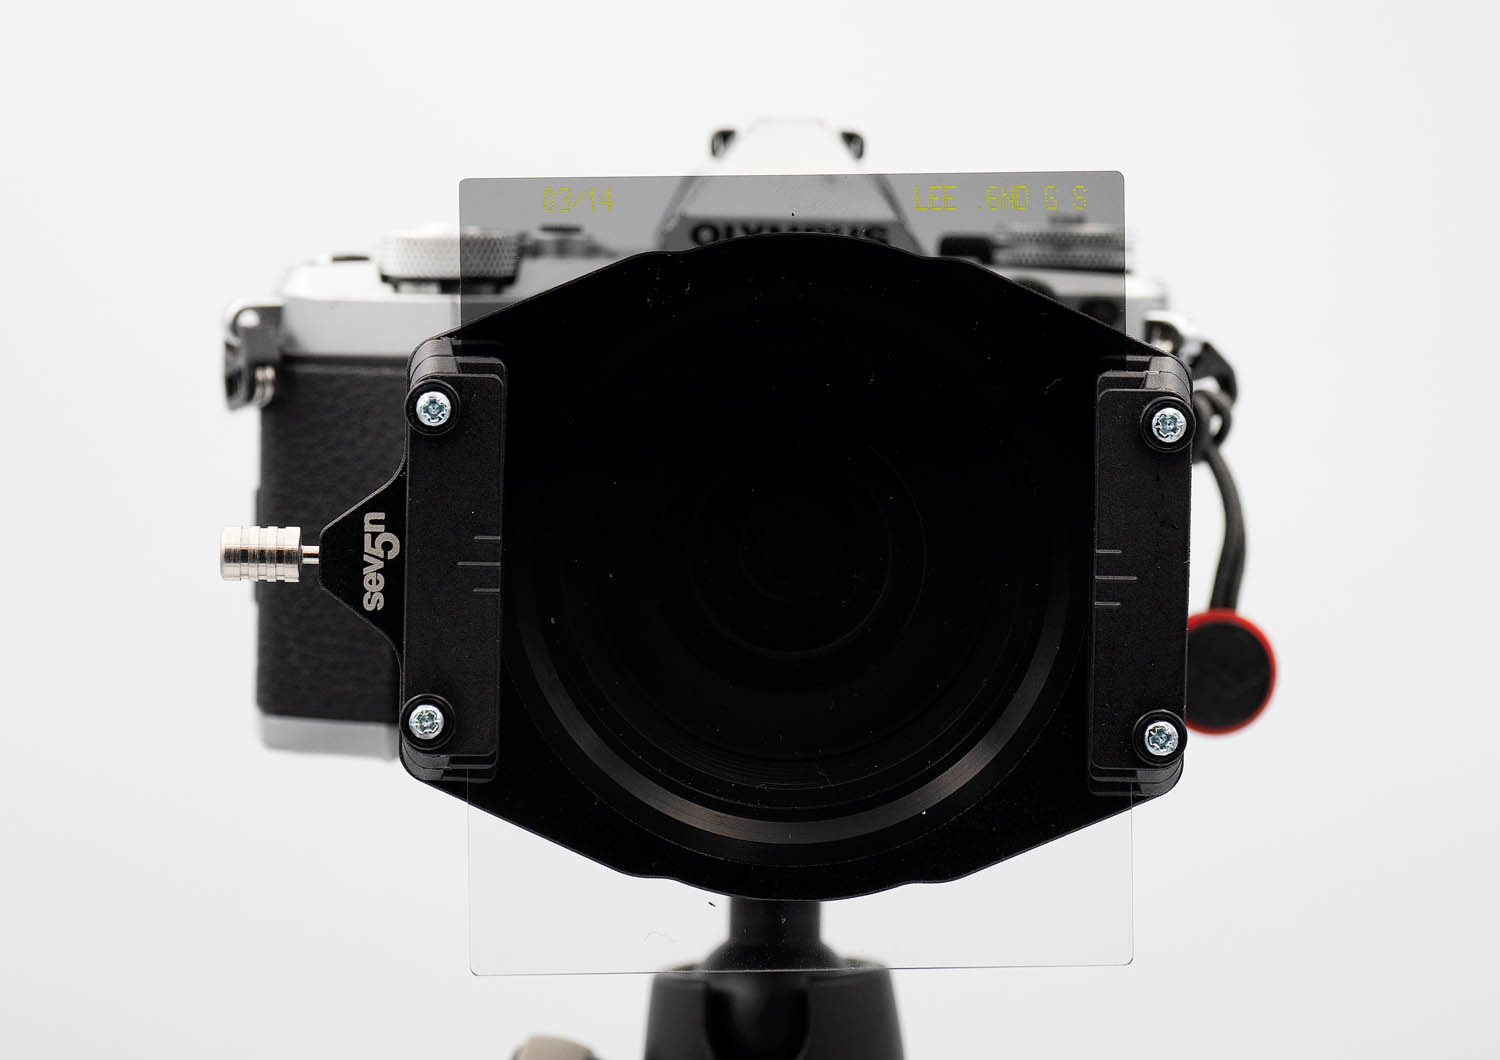 Image: Neutral Density Filters on the front element of the lens